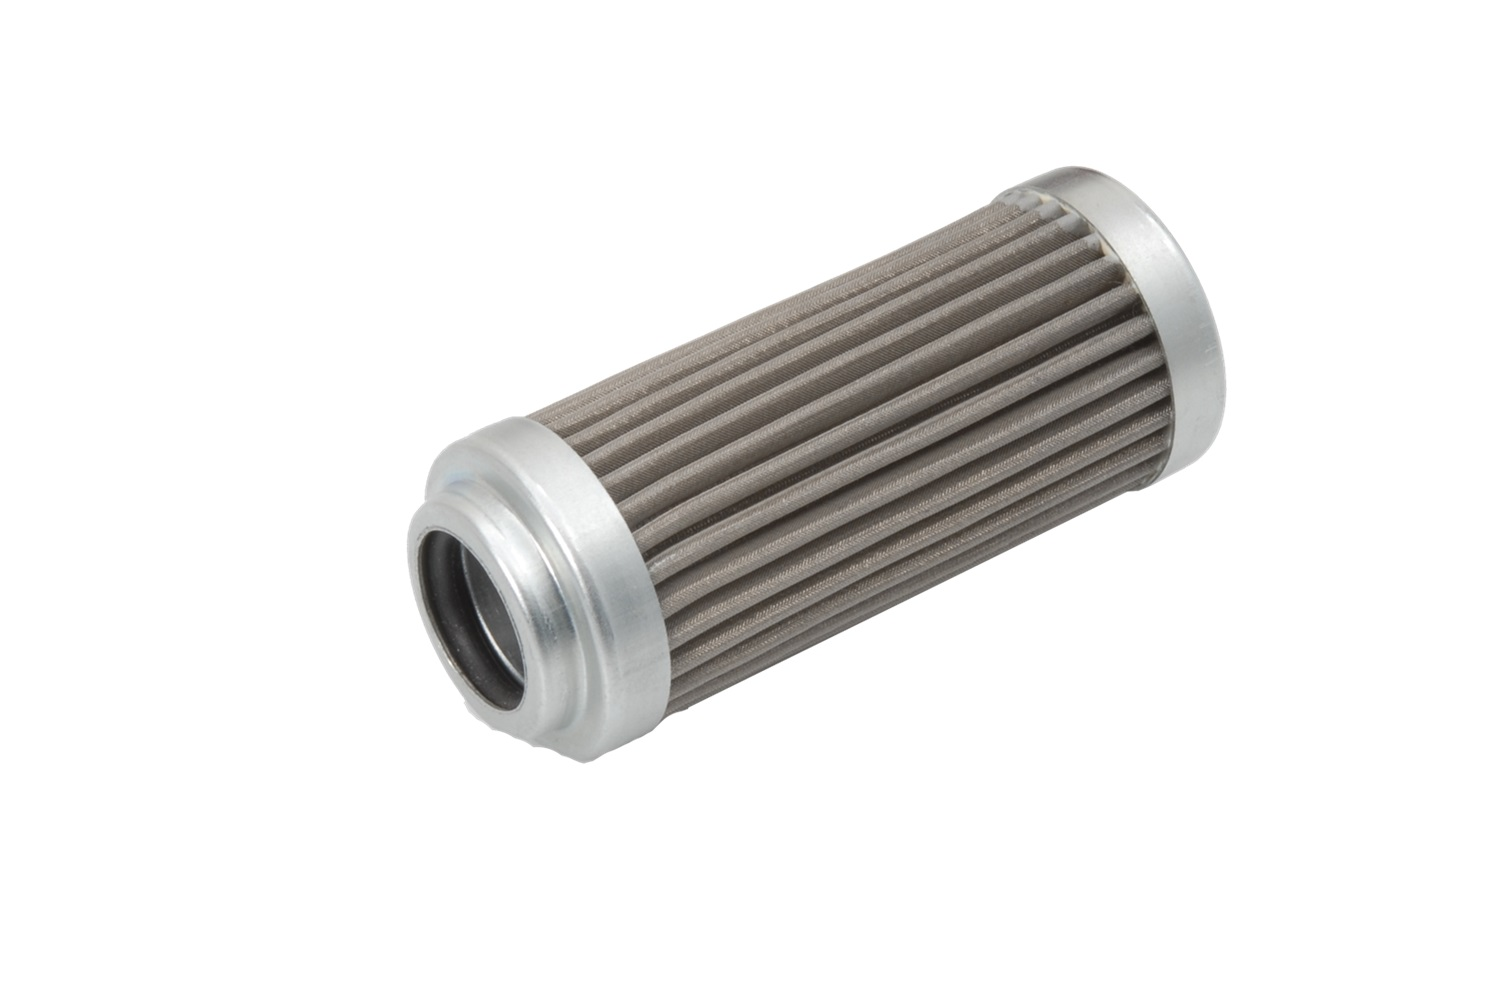 hight resolution of jet performance 34190 fuel filter 100 micron stainless steel filter replacement walmart com